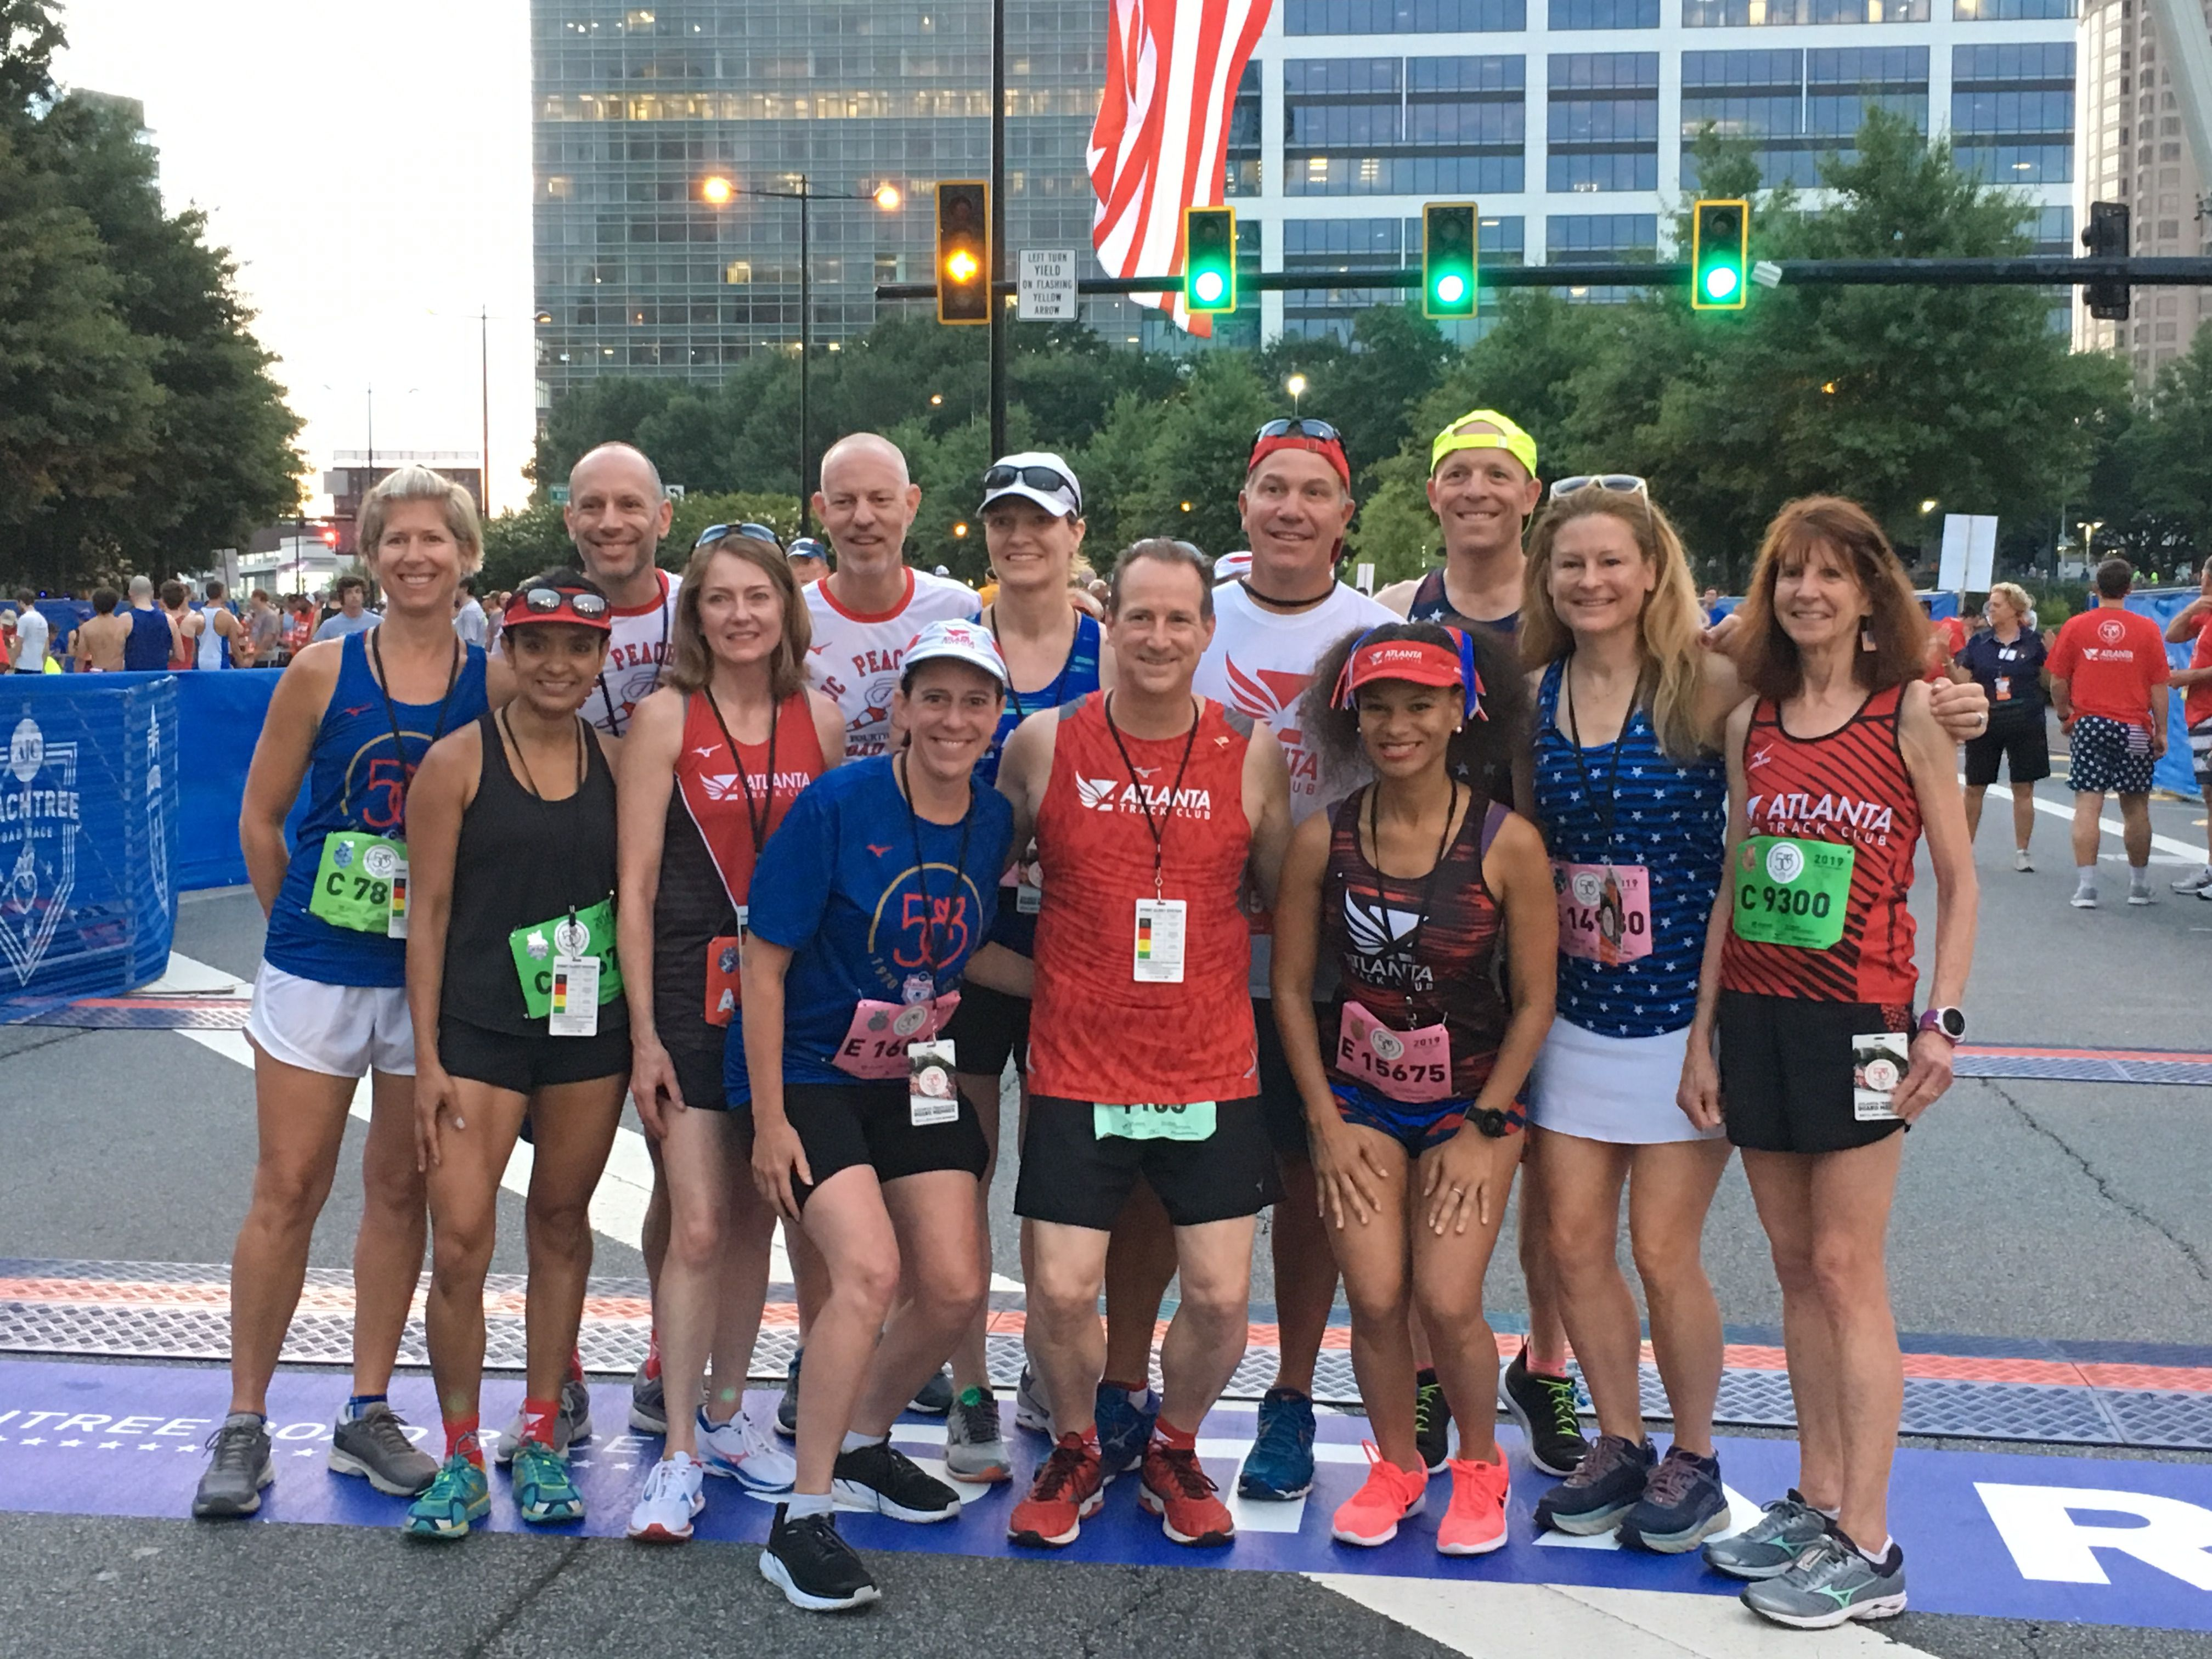 peachtree road race shoes 2019